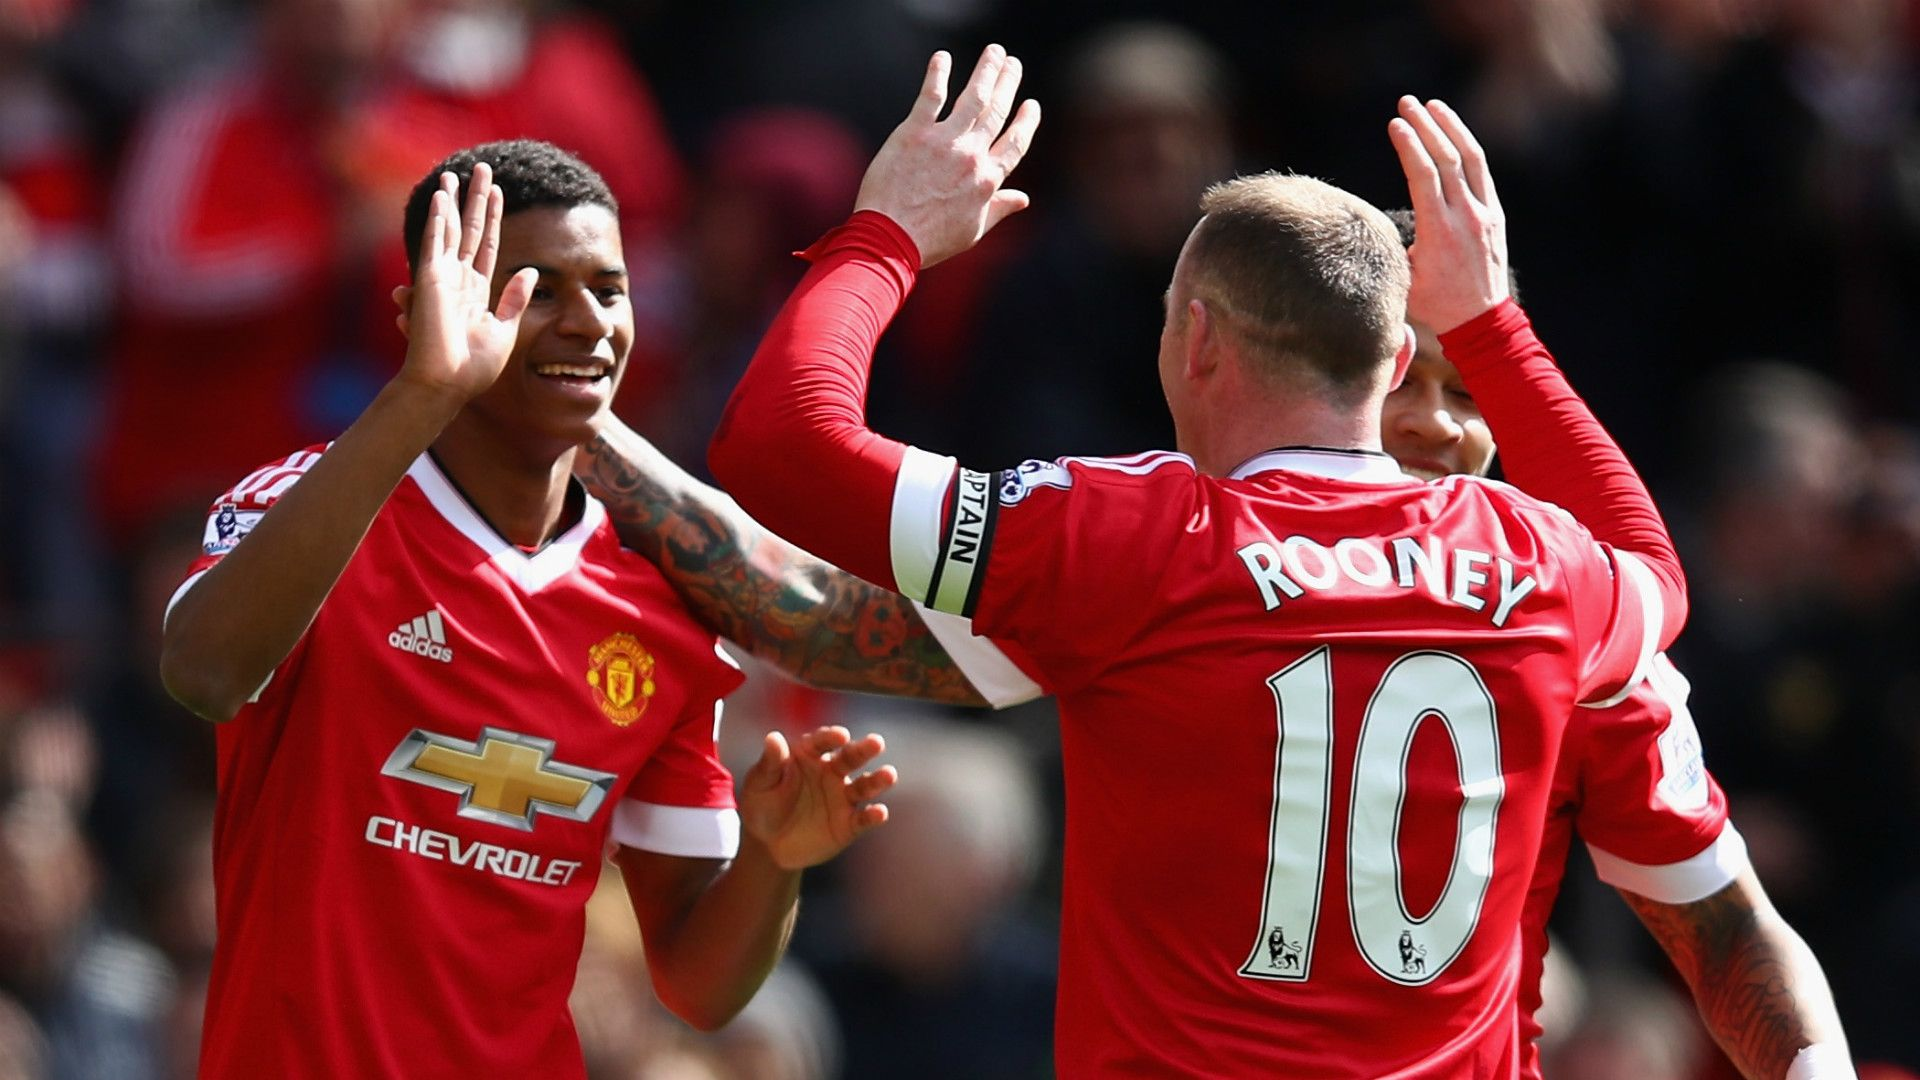 Manchester United Vs Crystal Palace Live Stream And Tv Channel Details For Premier League Manchester United Premier League Manchester